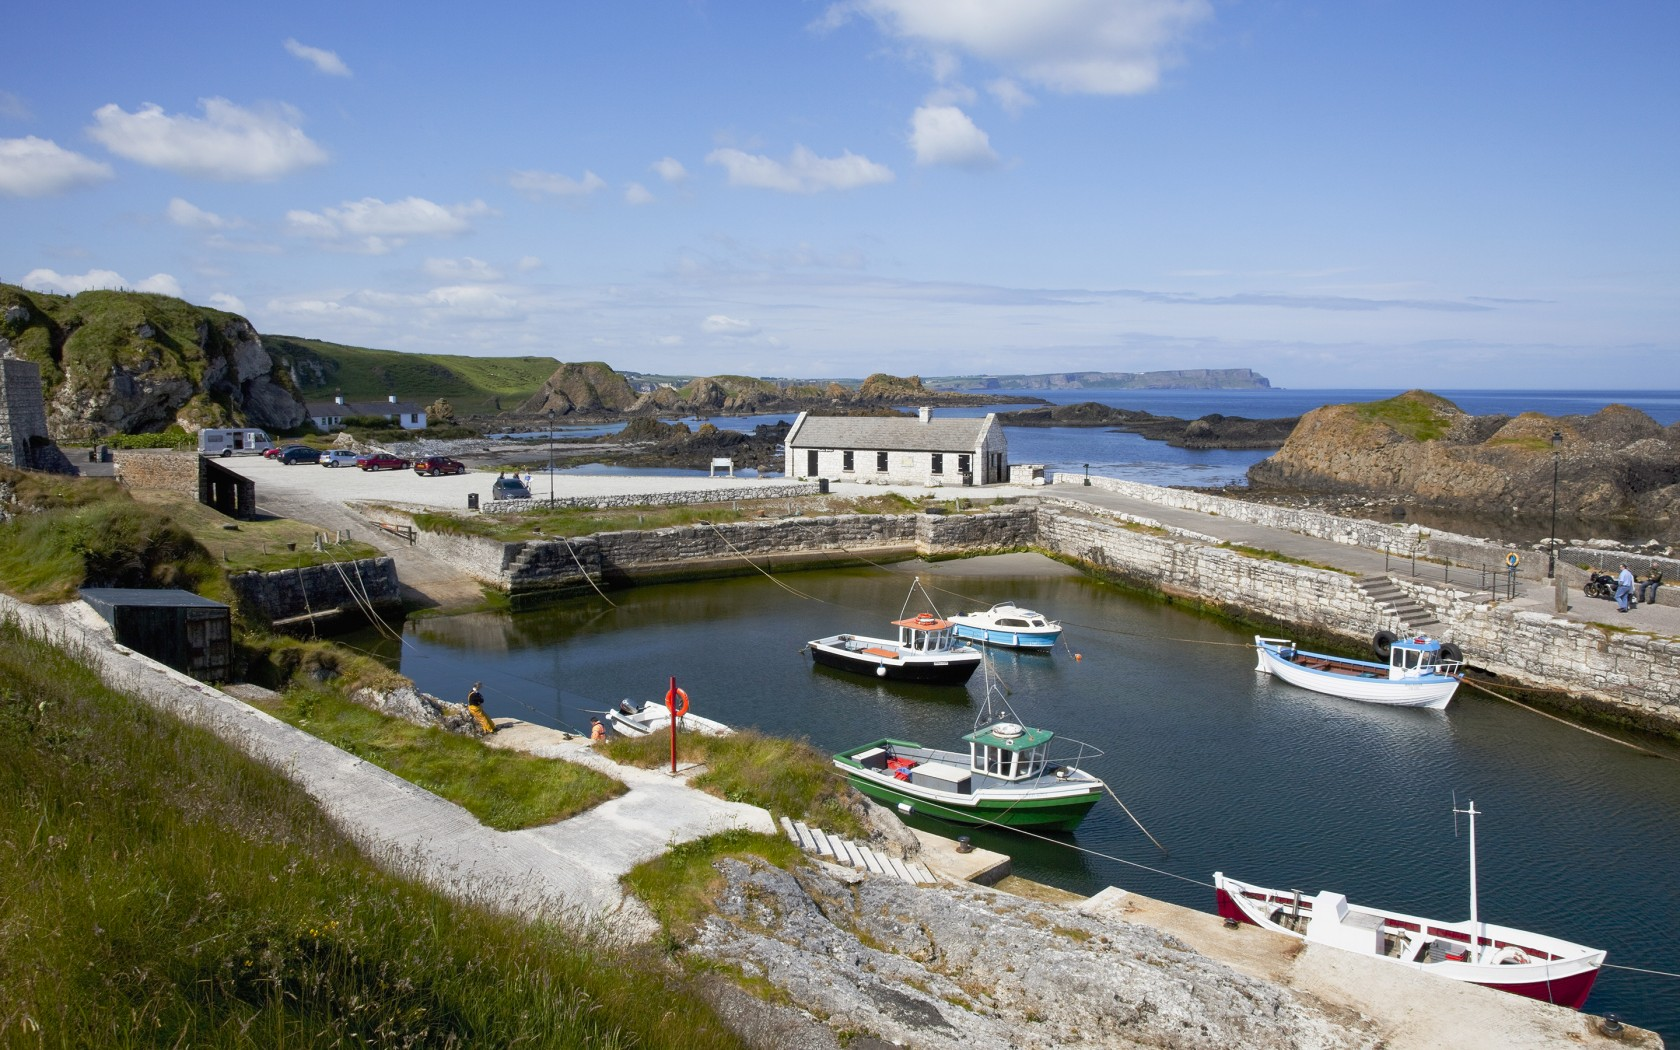 Game of Thrones Filming Location - Ballintoy Harbour, Northern Ireland